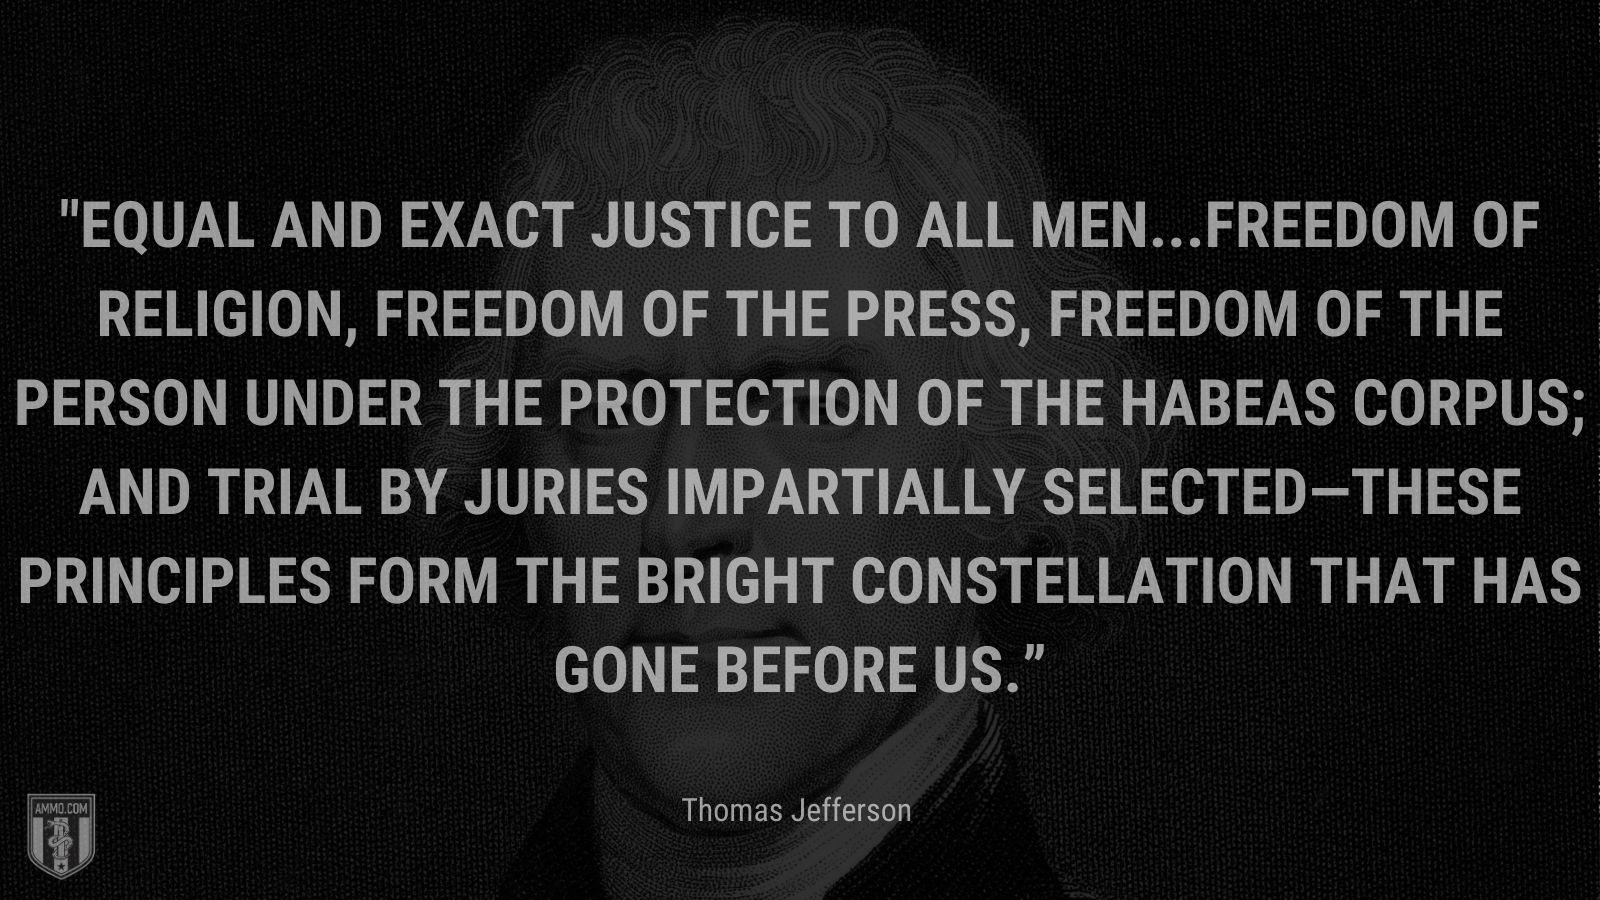 """""""Equal and exact justice to all men...freedom of religion, freedom of the press, freedom of the person under the protection of the habeas corpus; and trial by juries impartially selected—these principles form the bright constellation that has gone before us."""" - Thomas Jefferson"""